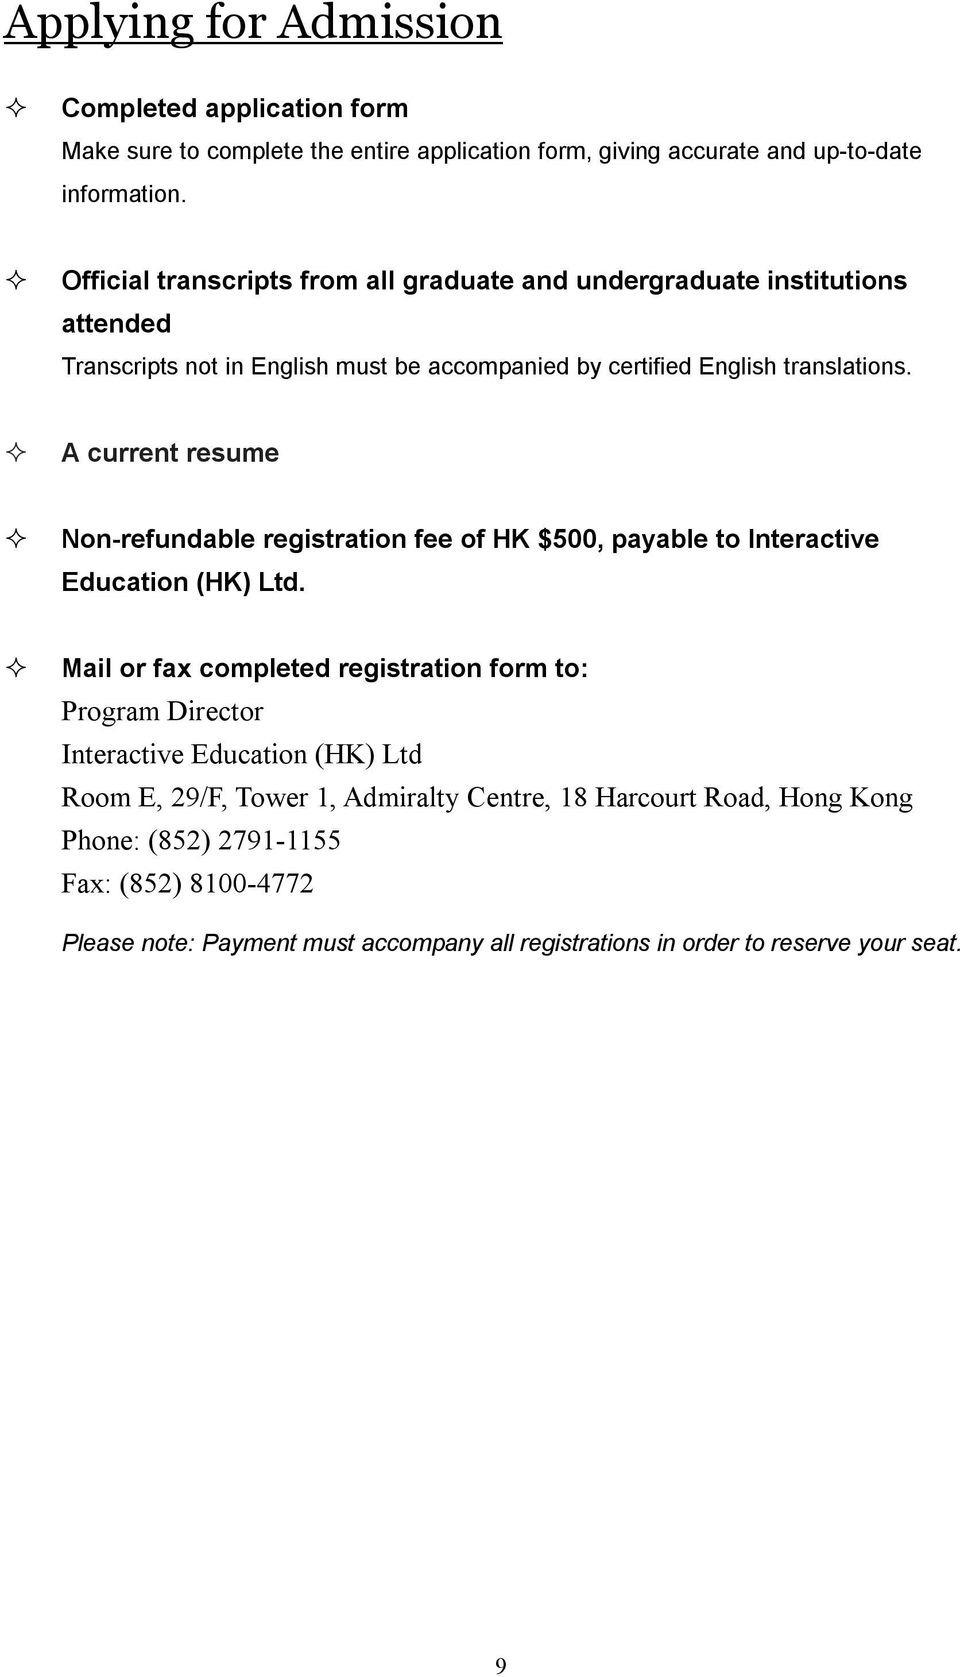 A current resume Non-refundable registration fee of HK $500, payable to Interactive Education (HK) Ltd.